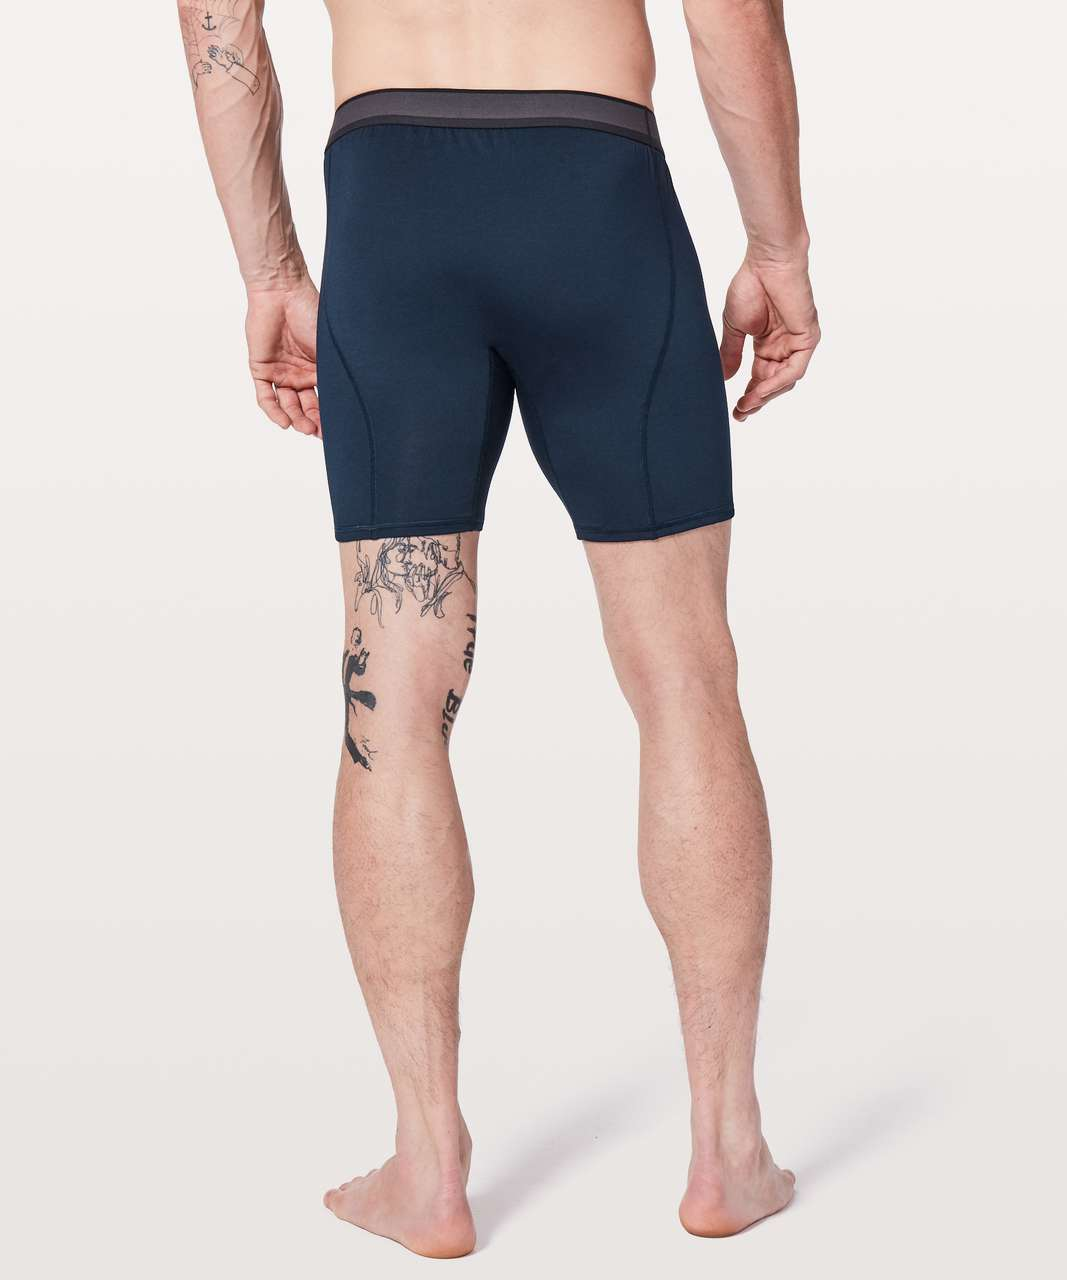 "Lululemon No Boxer Boxer (The Long One) *7.5"" - True Navy"